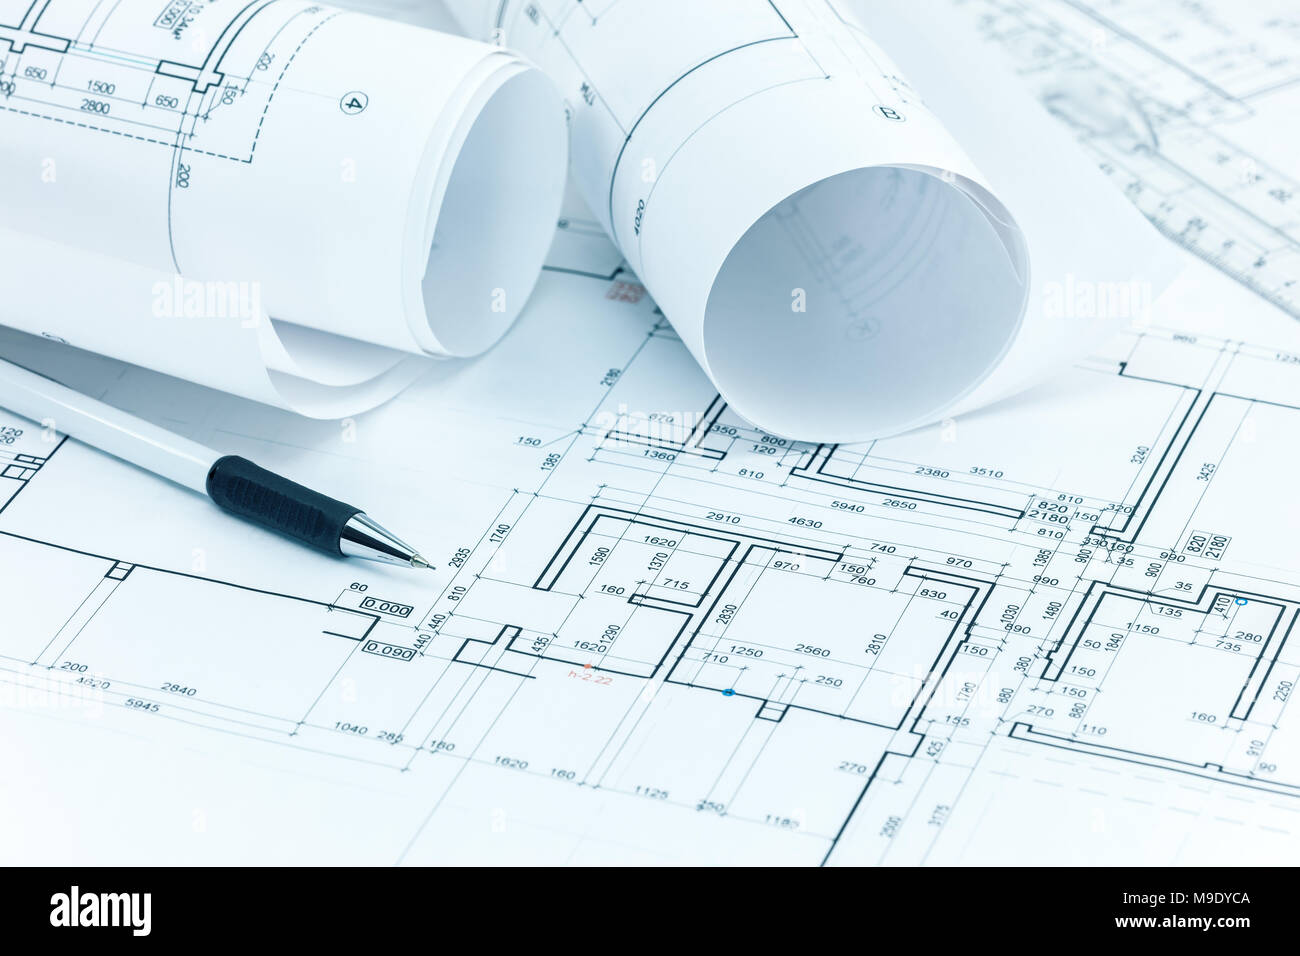 Architectural Project Plans Blueprint Rolls Pencil And Ruler